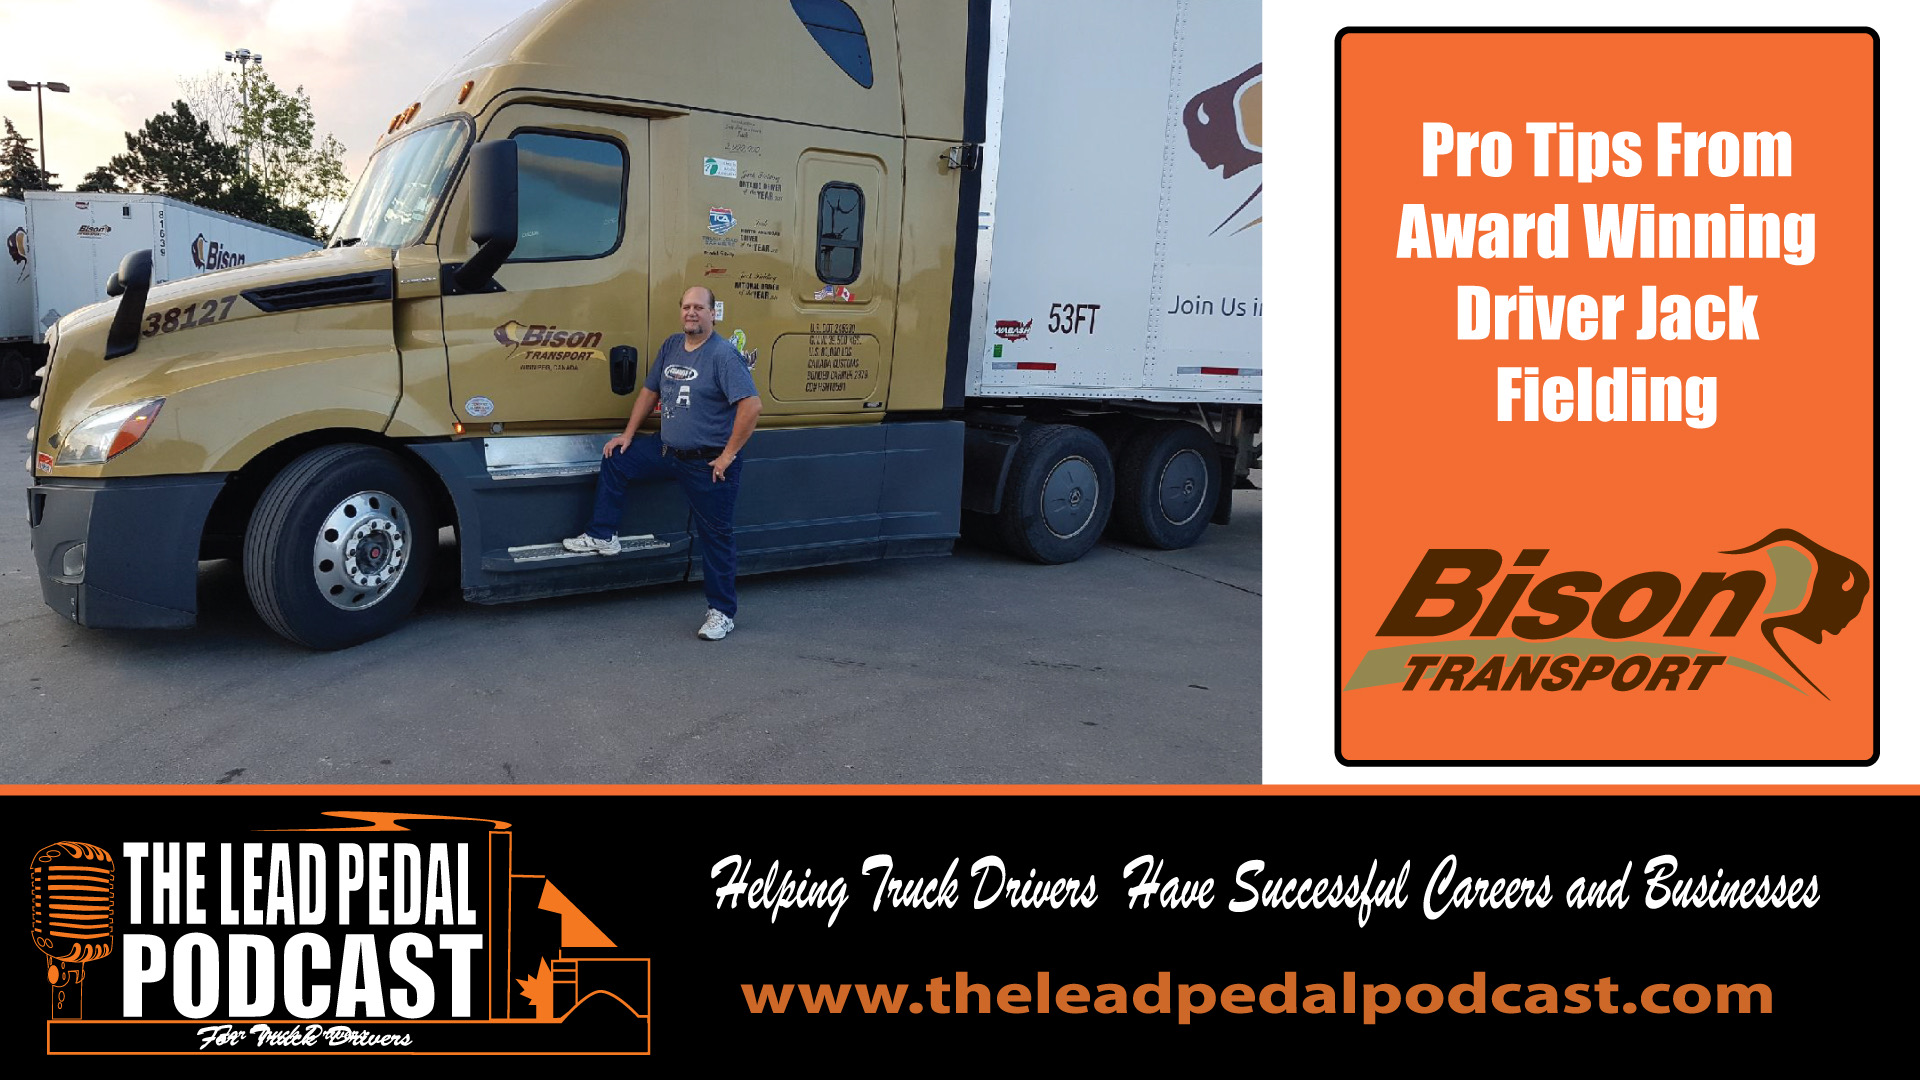 Award Winning trucking Tips from Bison Transport